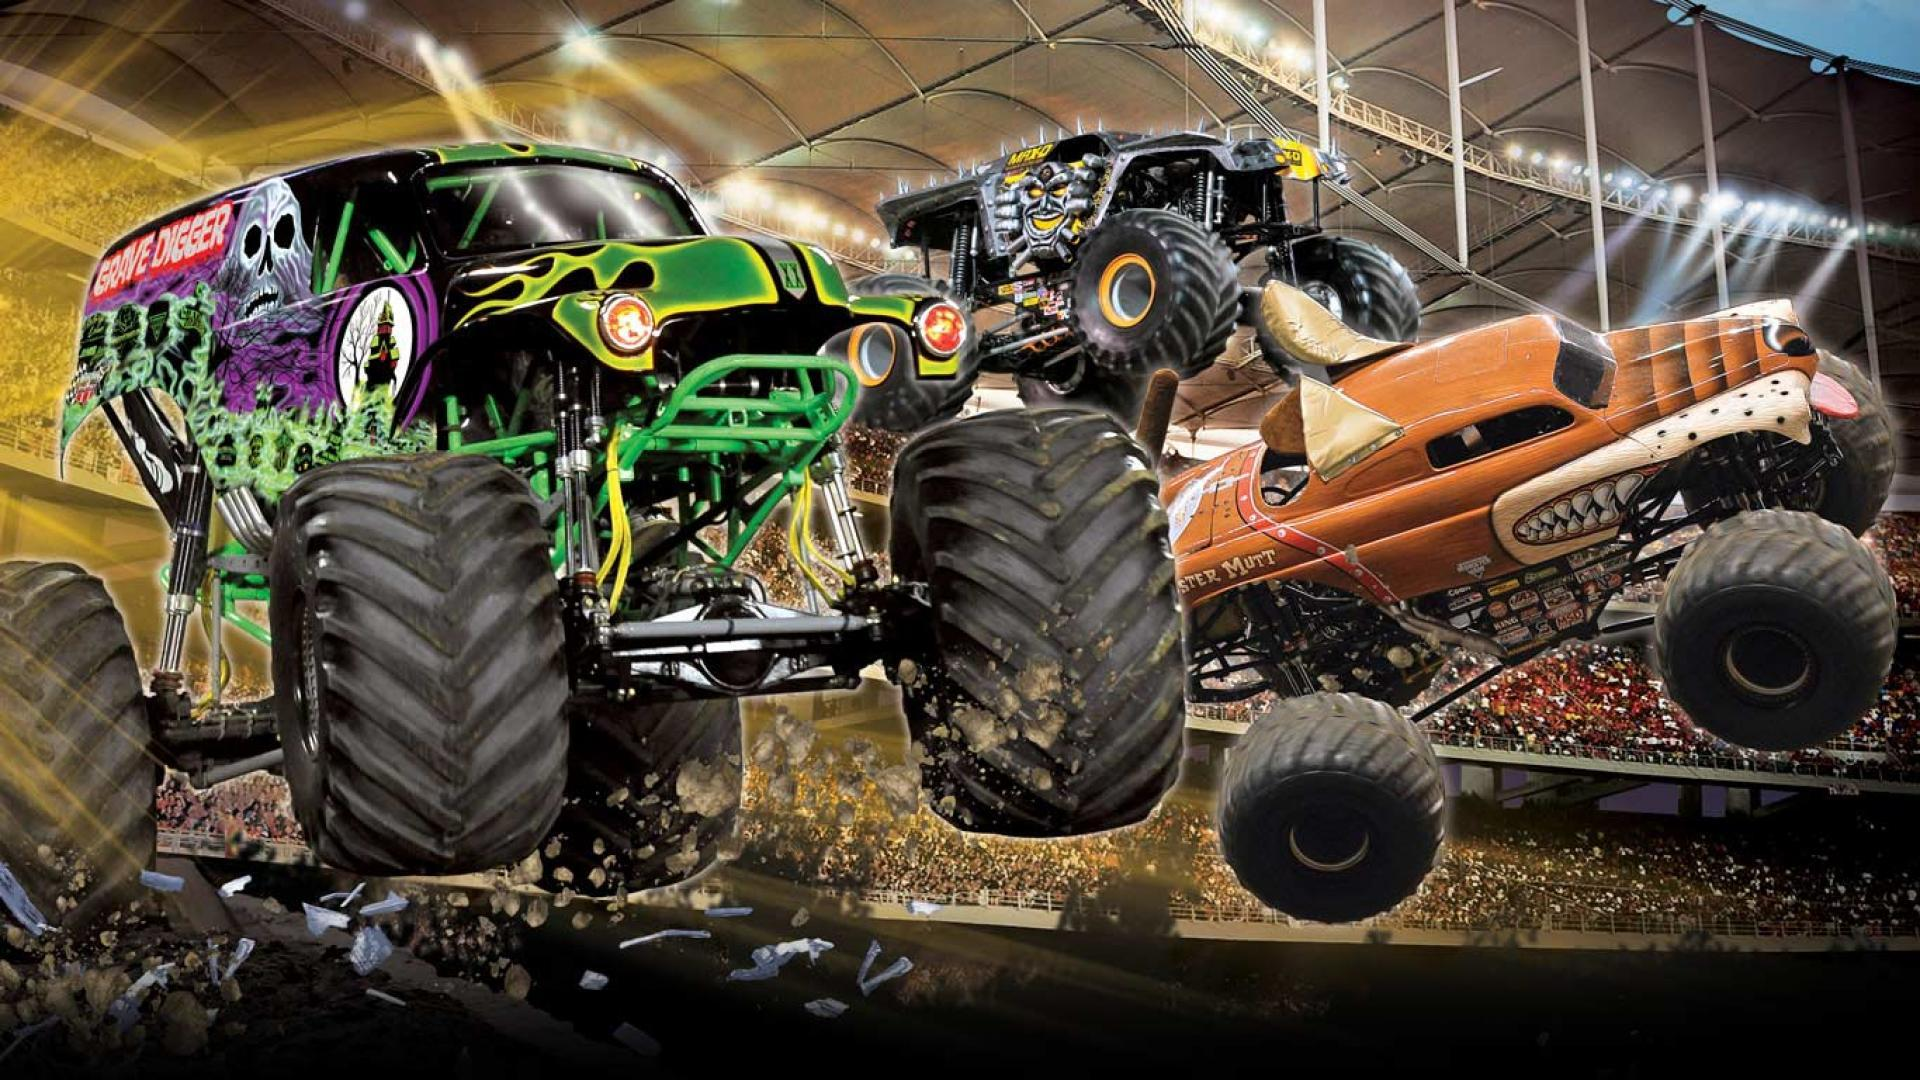 Monster Truck Wallpapers | www.topsimages.com